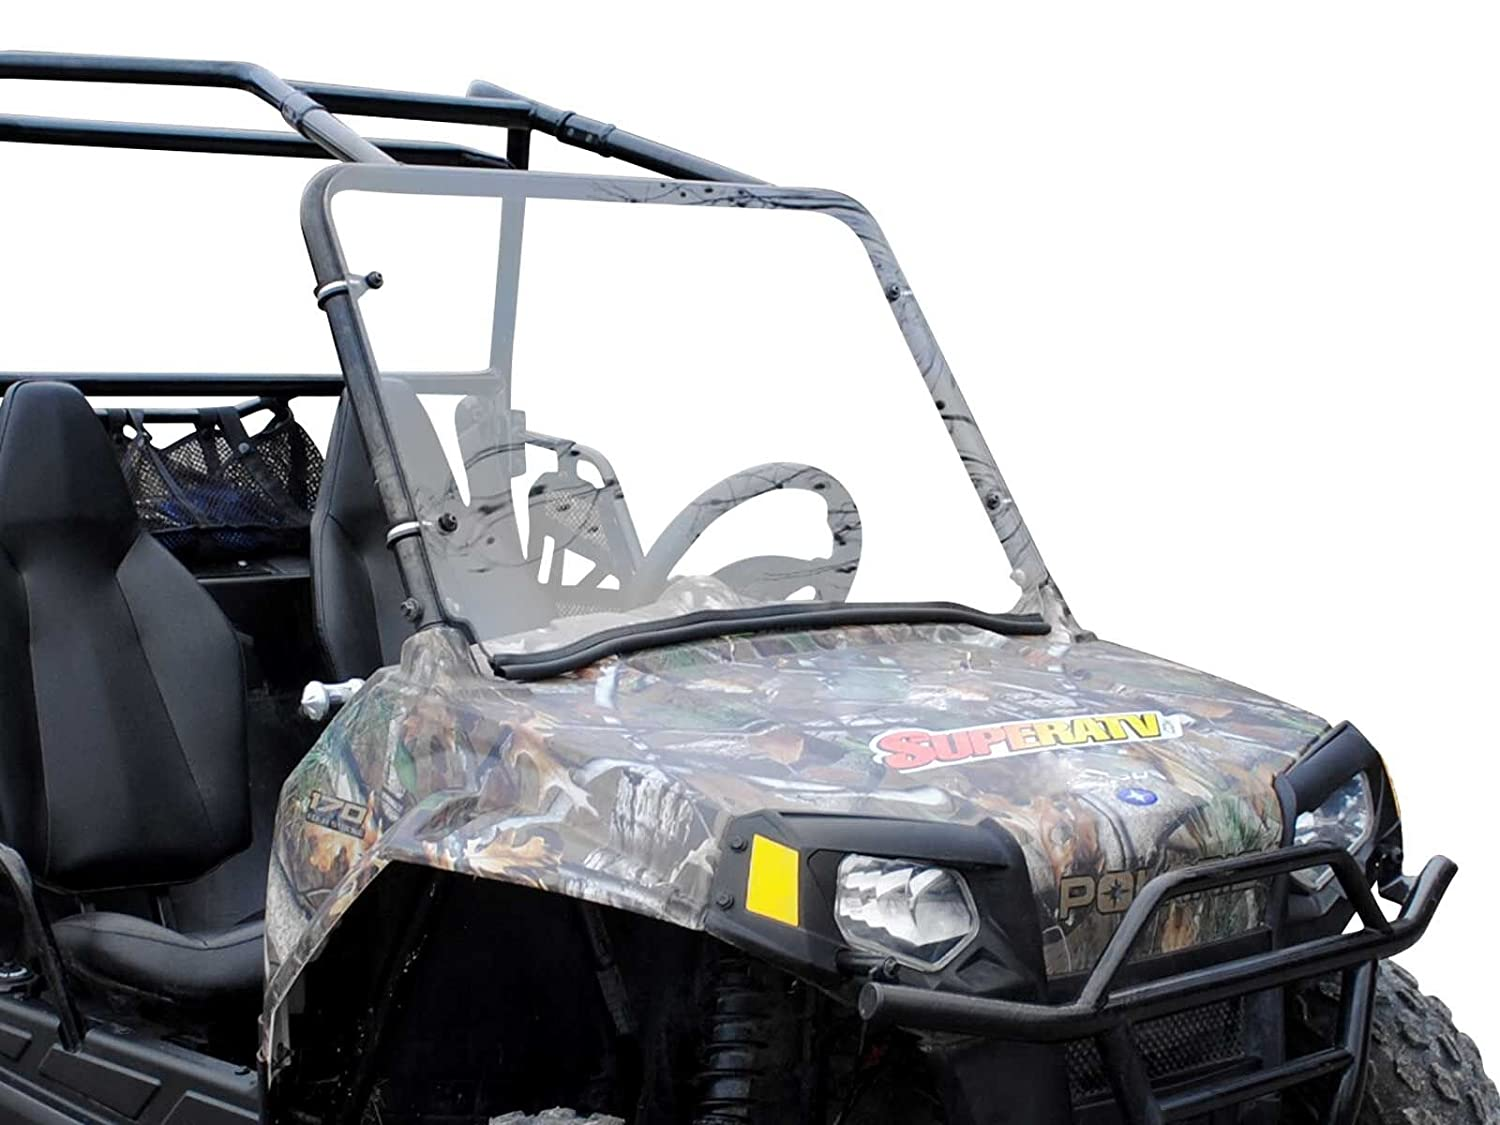 XP 4 900 See Fitment for Compatible Years SuperATV Heavy Duty Clear Full Windshield for Polaris RZR 800//800 S XP 900//570 Easy Install! 800 4